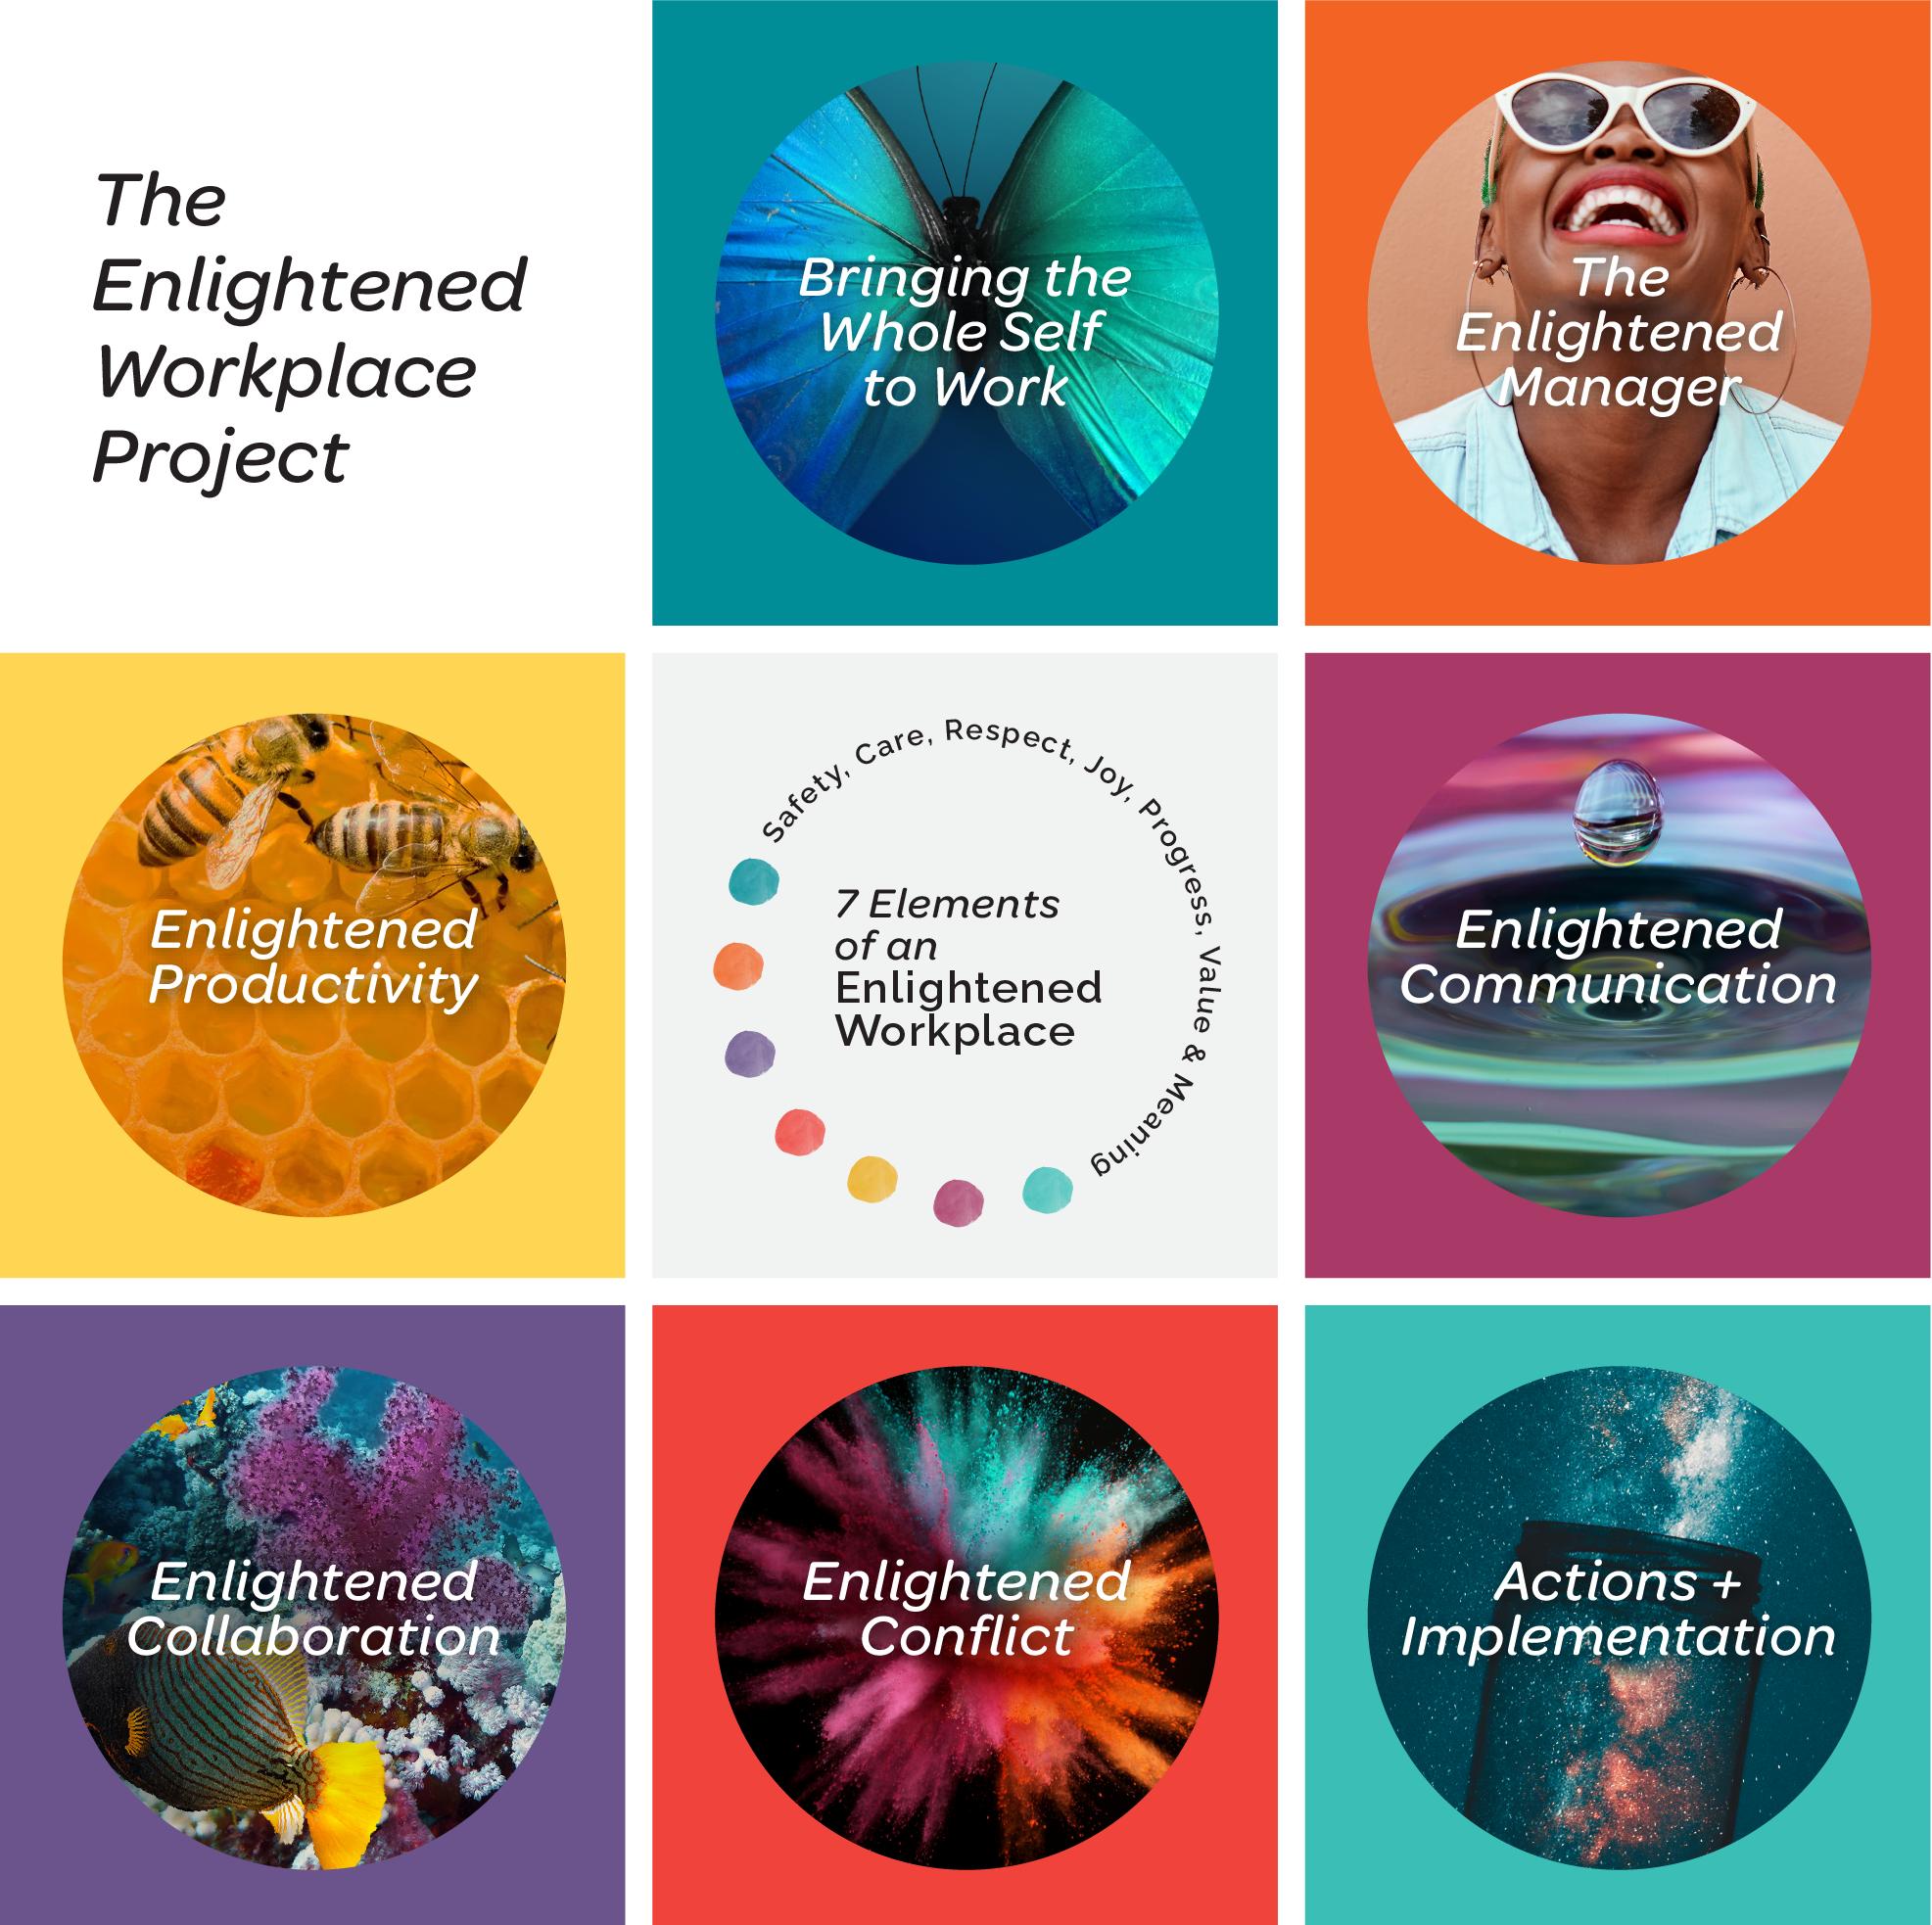 The Enlightened Workplace Project includes 7 courses: Bringing the Whole Self to Work, The Enlighened Manager, Enlightened Productivity, Enlightened Communication, Enlightened Collaboration, Enlightened Conflict, and Actions + Implementations.